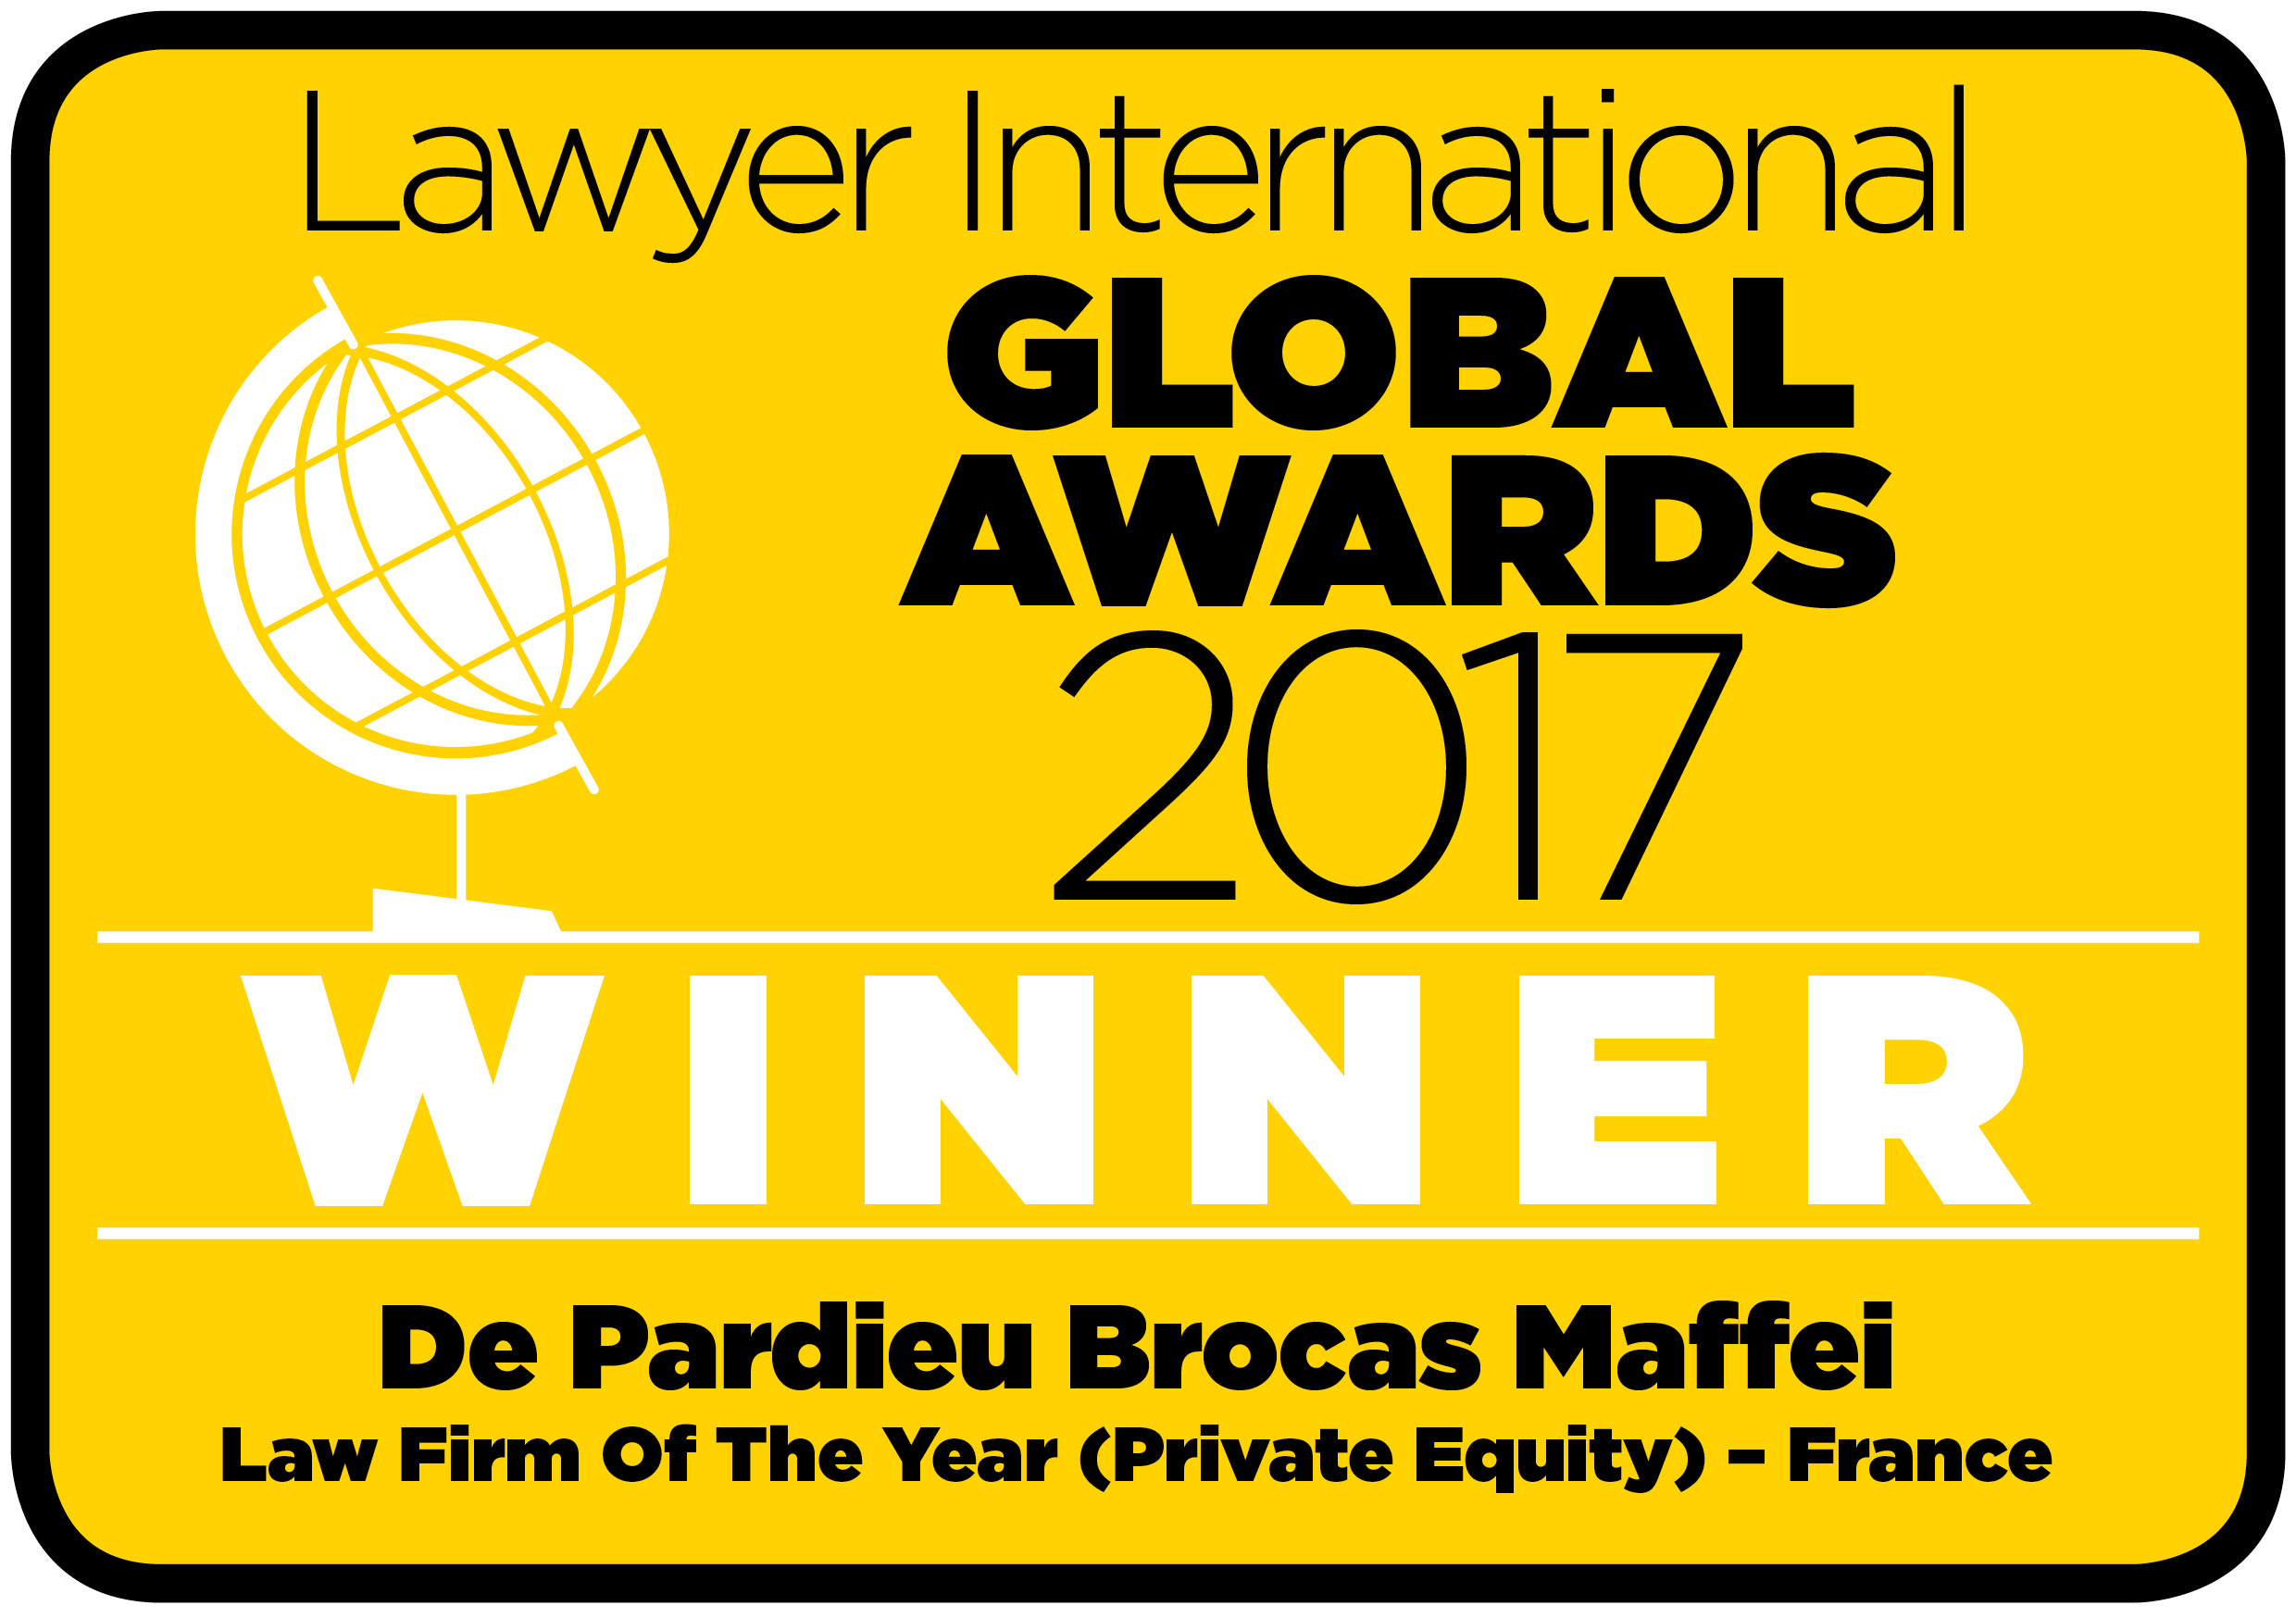 http://www.de-pardieu.com/wp-content/uploads/2015/08/The-Lawyer-international-Global-award-logo_DE-PARDIEU-BROCAS-MAFFEI.jpg